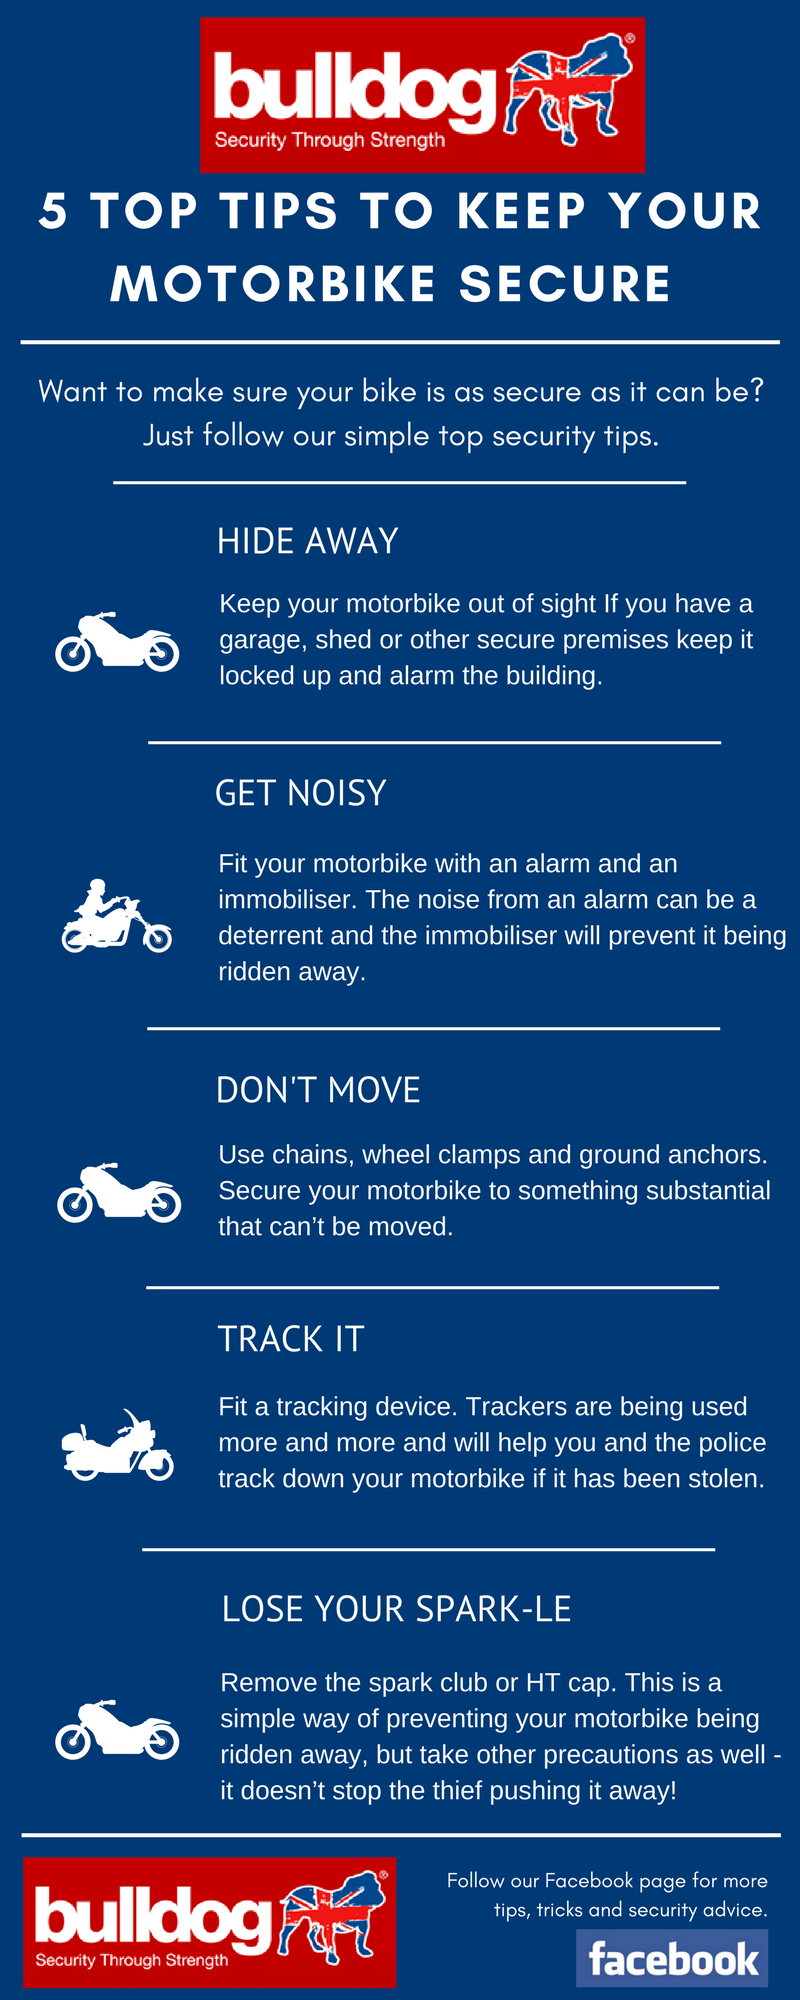 5 top tips to keep your motorbike secure